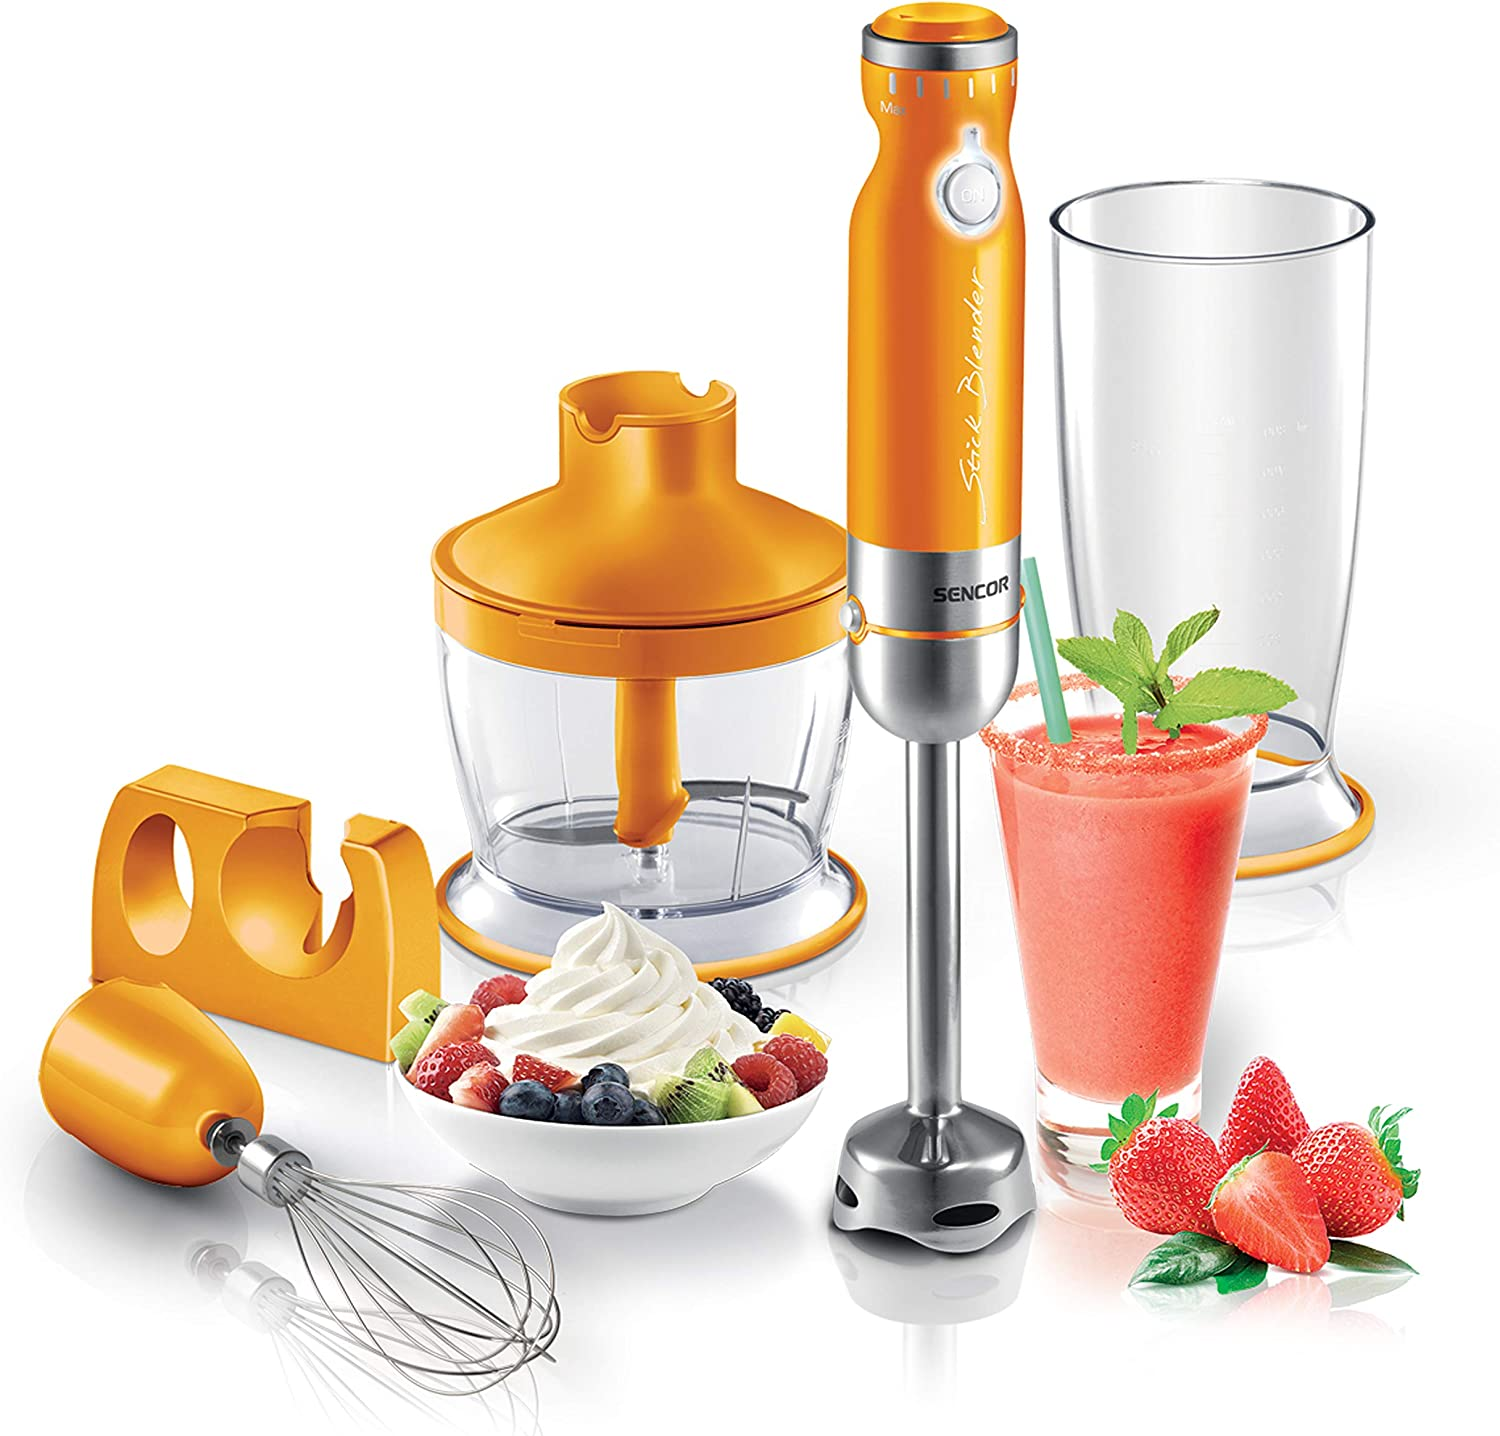 Sencor Ultra Quiet and Thin Stainless Steel Stick Blender with Variable Speed Control and Accessories, Small, Orange